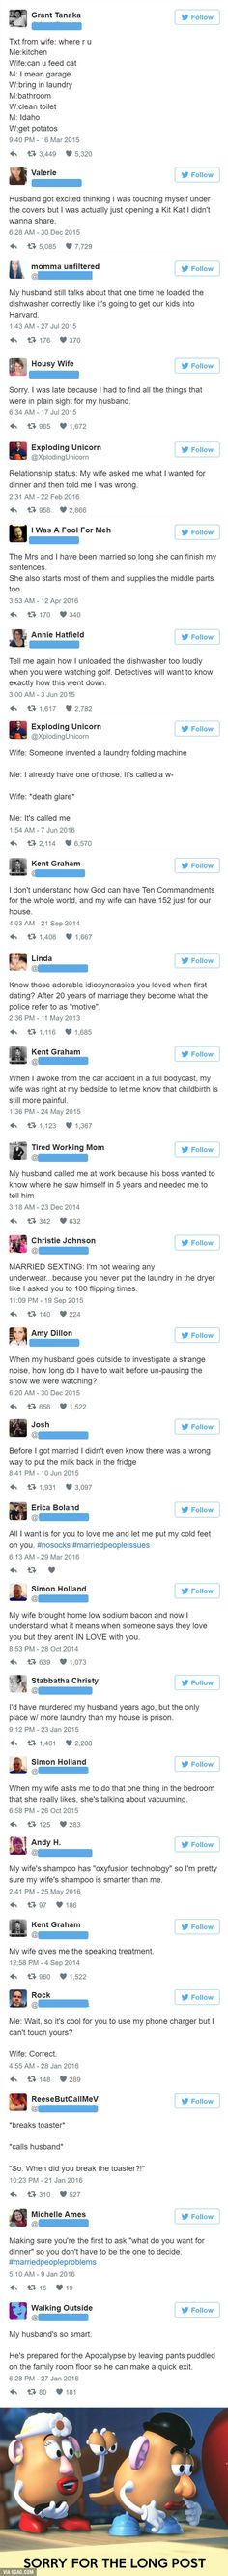 Funny Married People Tweets - 9GAG